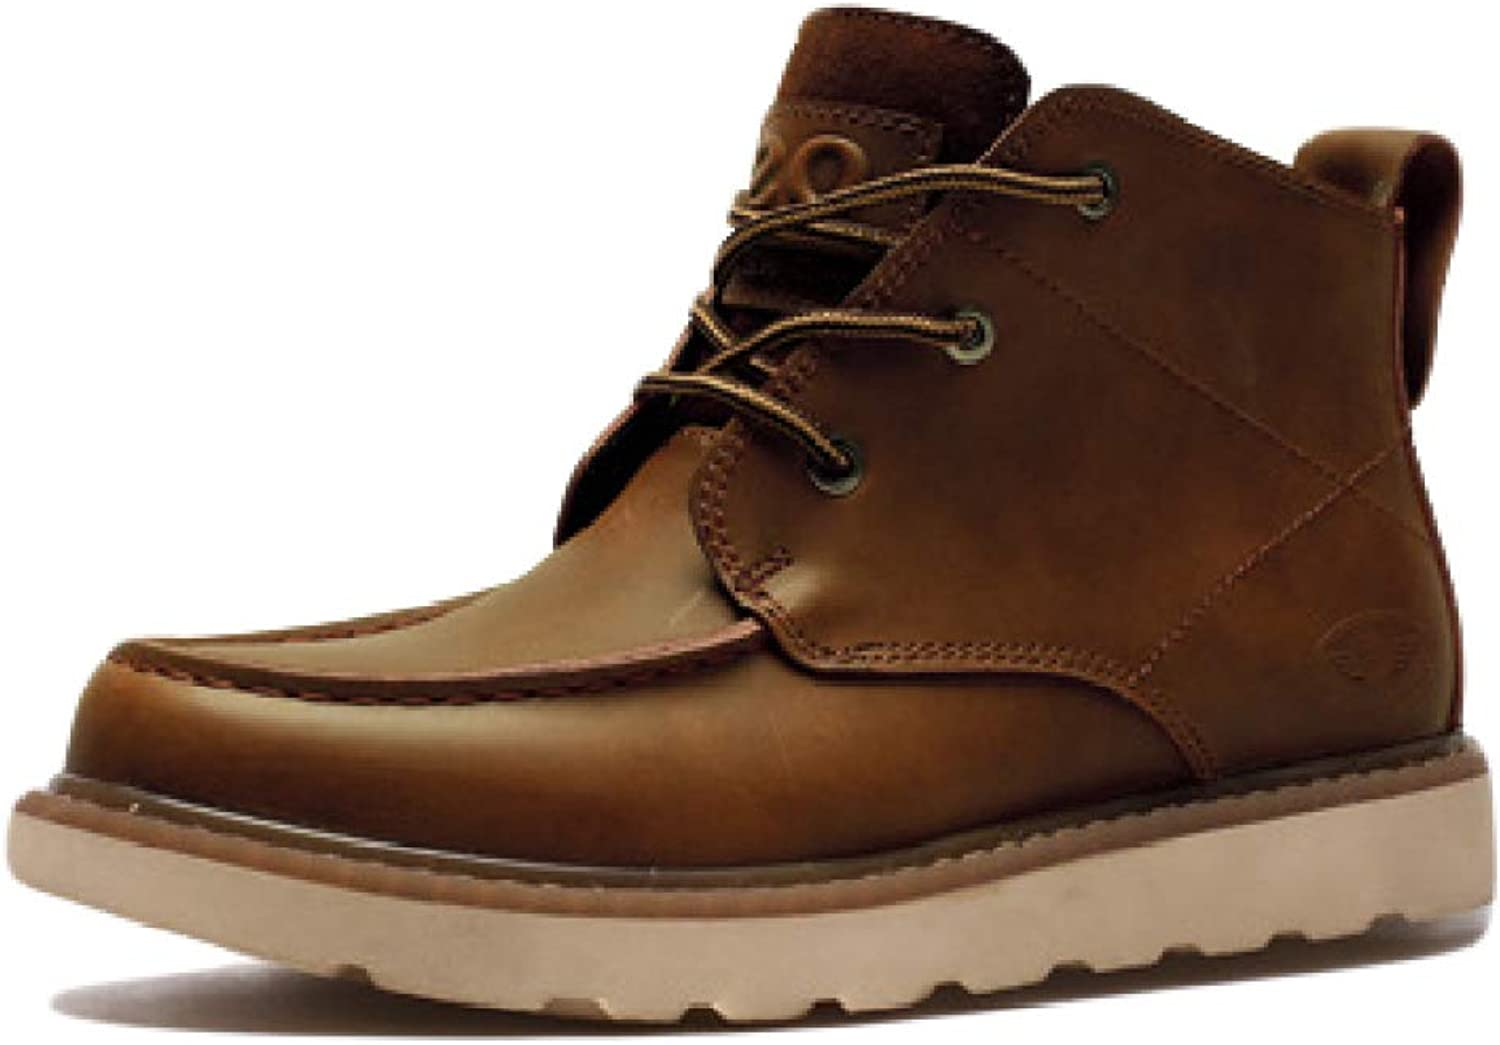 Martin shoes Men's Lacing Ankle shoes Short Boots Work Boots Casual Safety Boots Thick Heel Mountain Climbing